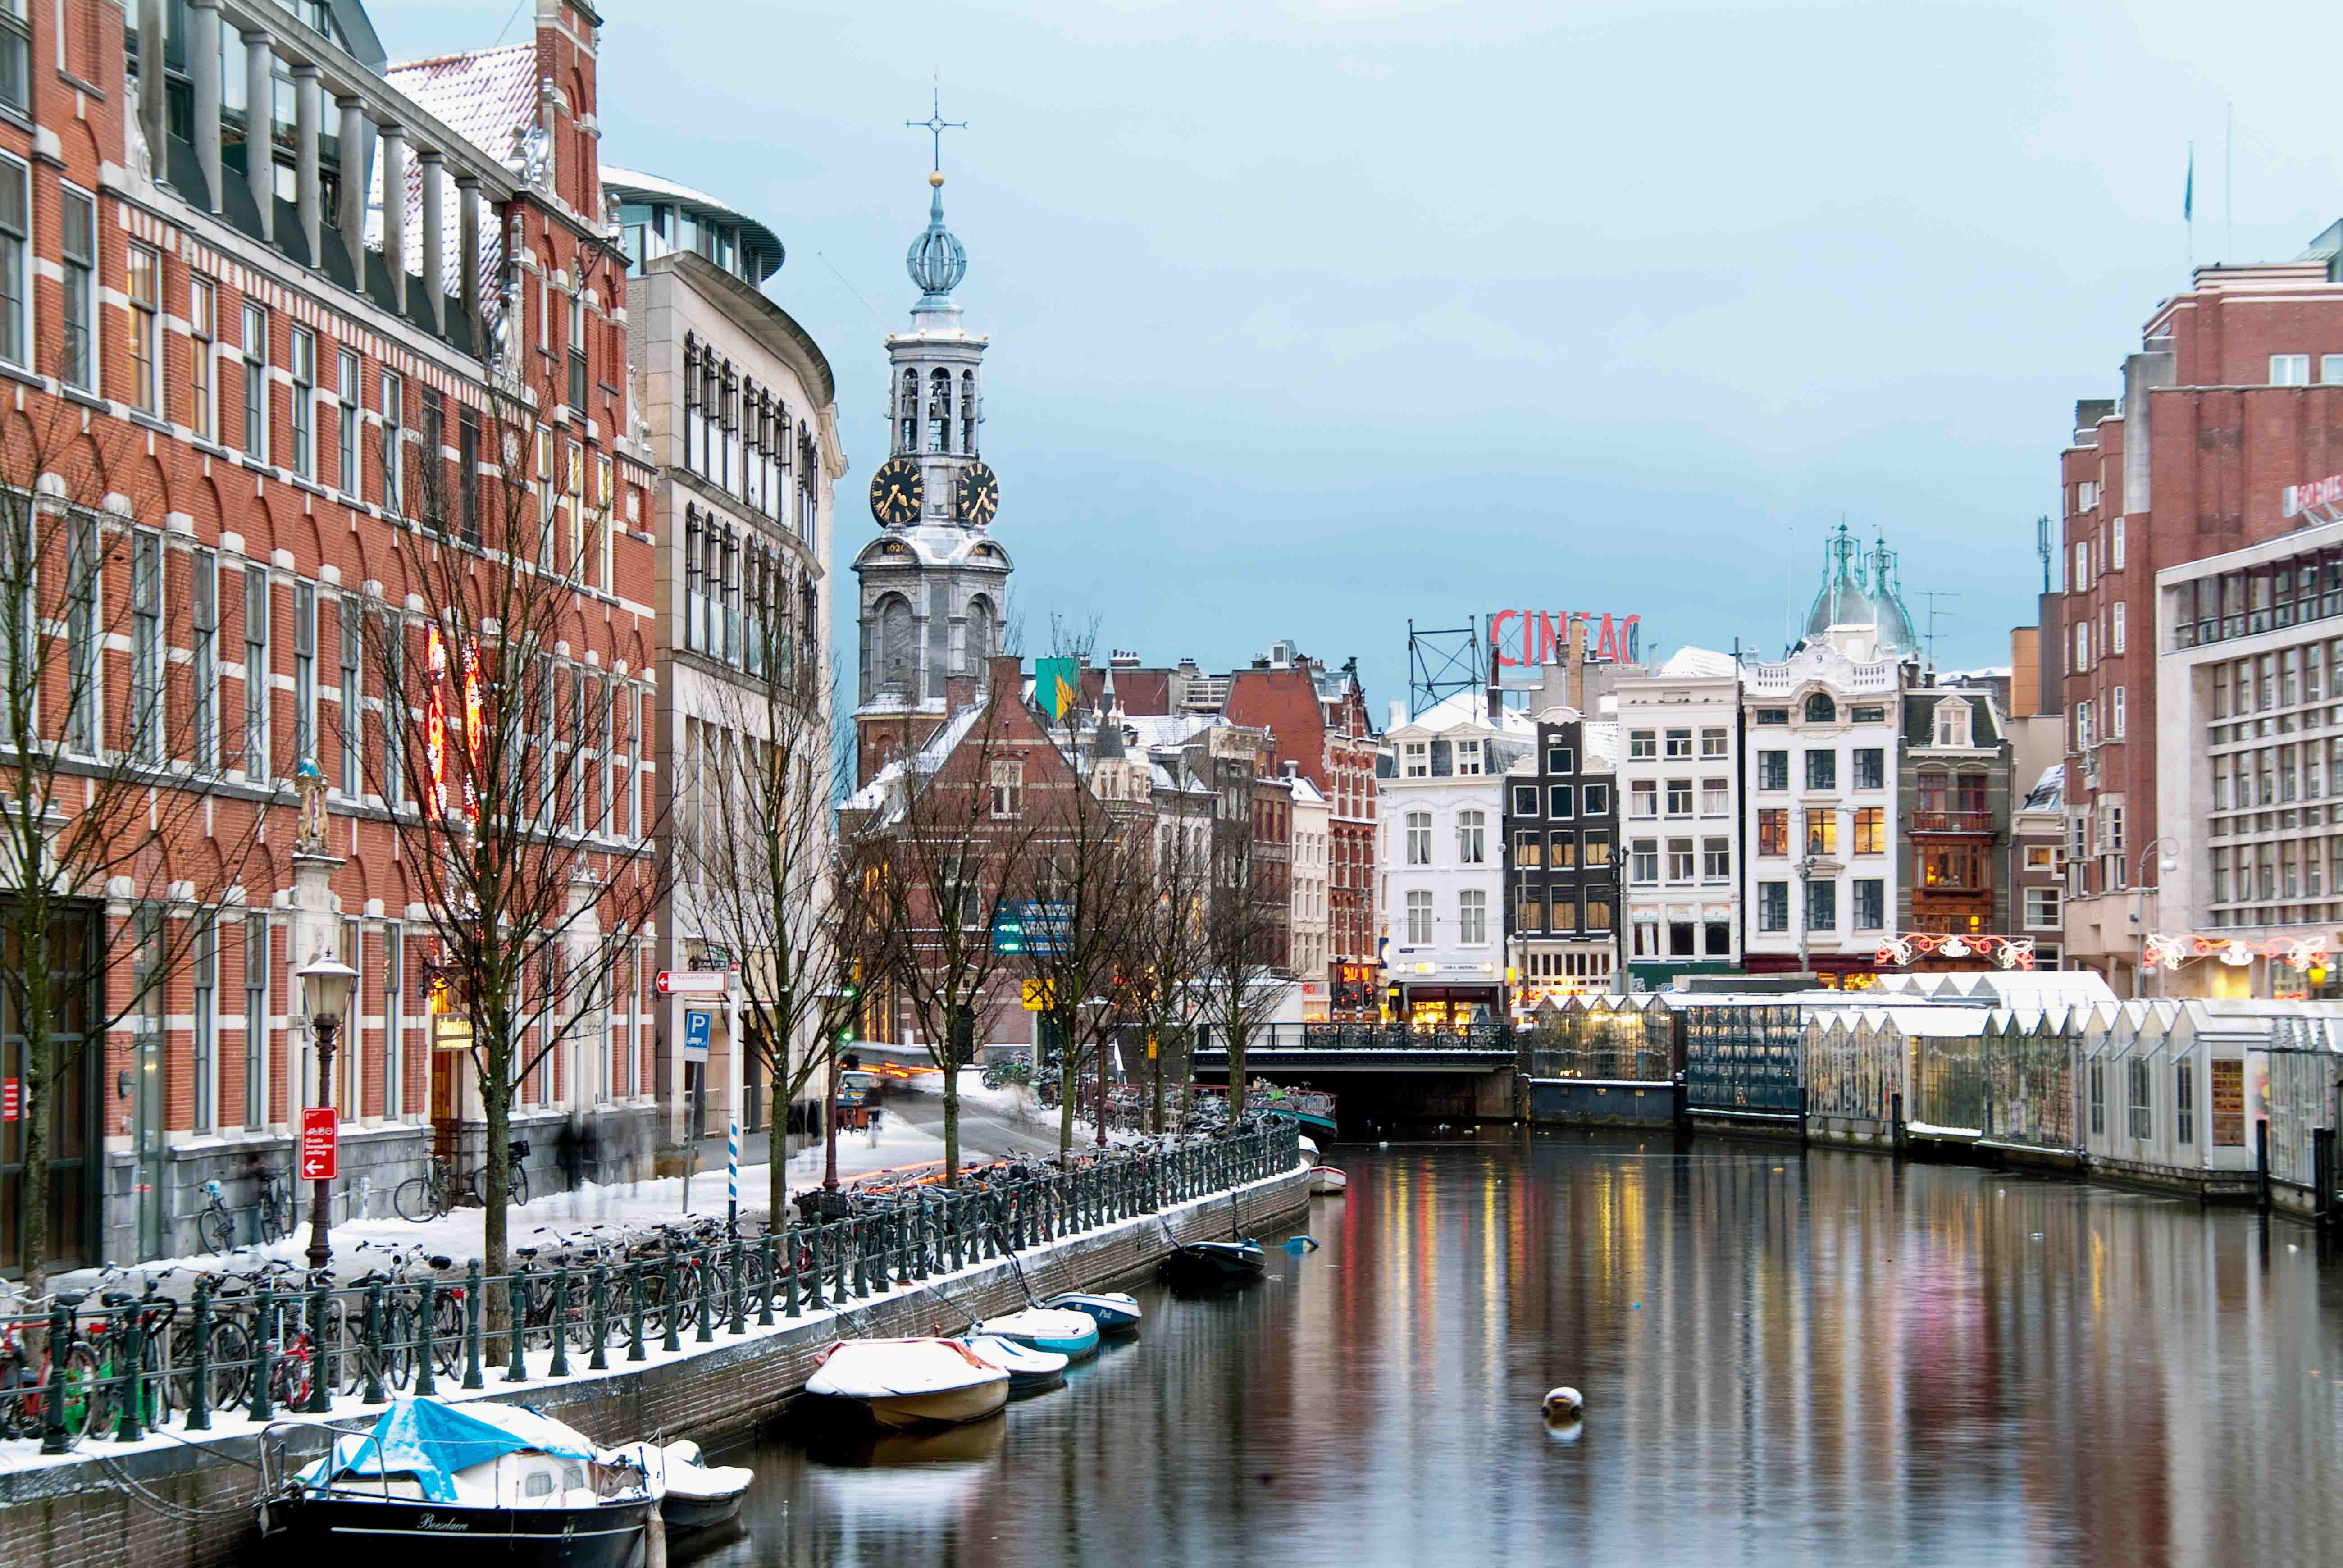 Amsterdam's buildings and canal in winter